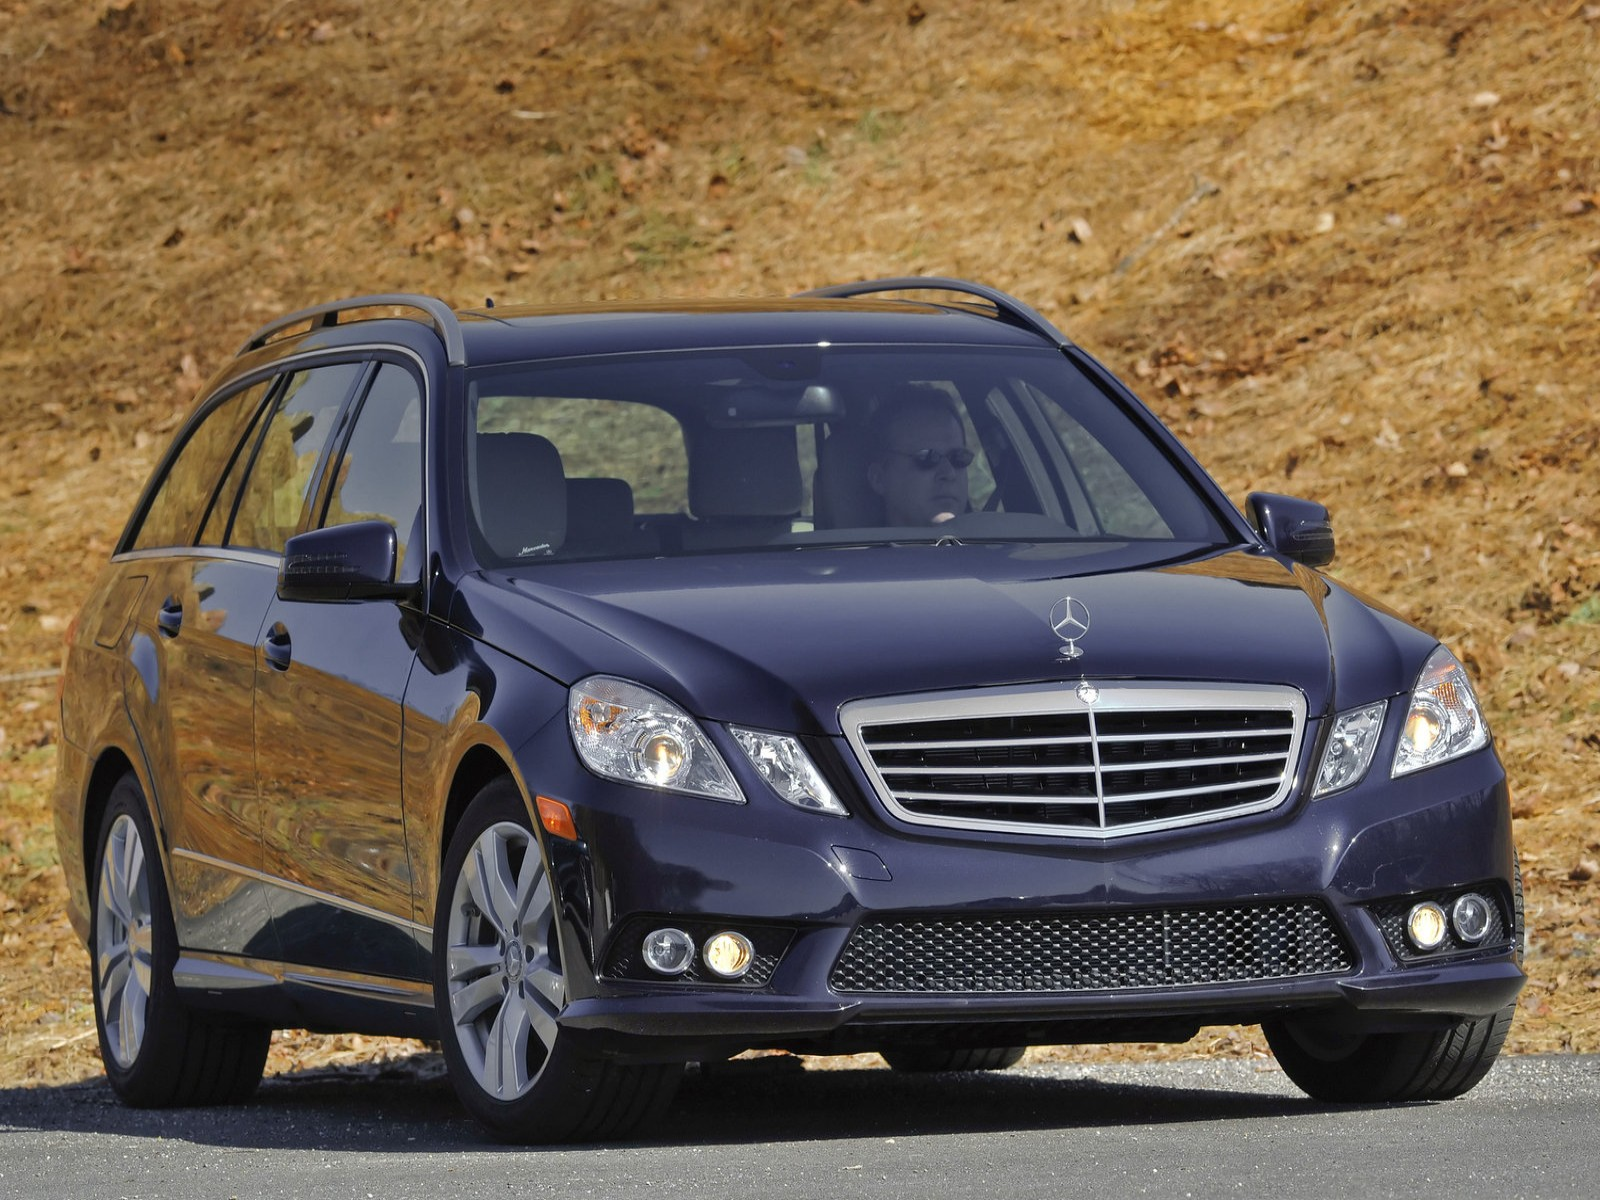 Car pictures mercedes benz e350 4matic wagon 2011 for 2011 mercedes benz e350 for sale